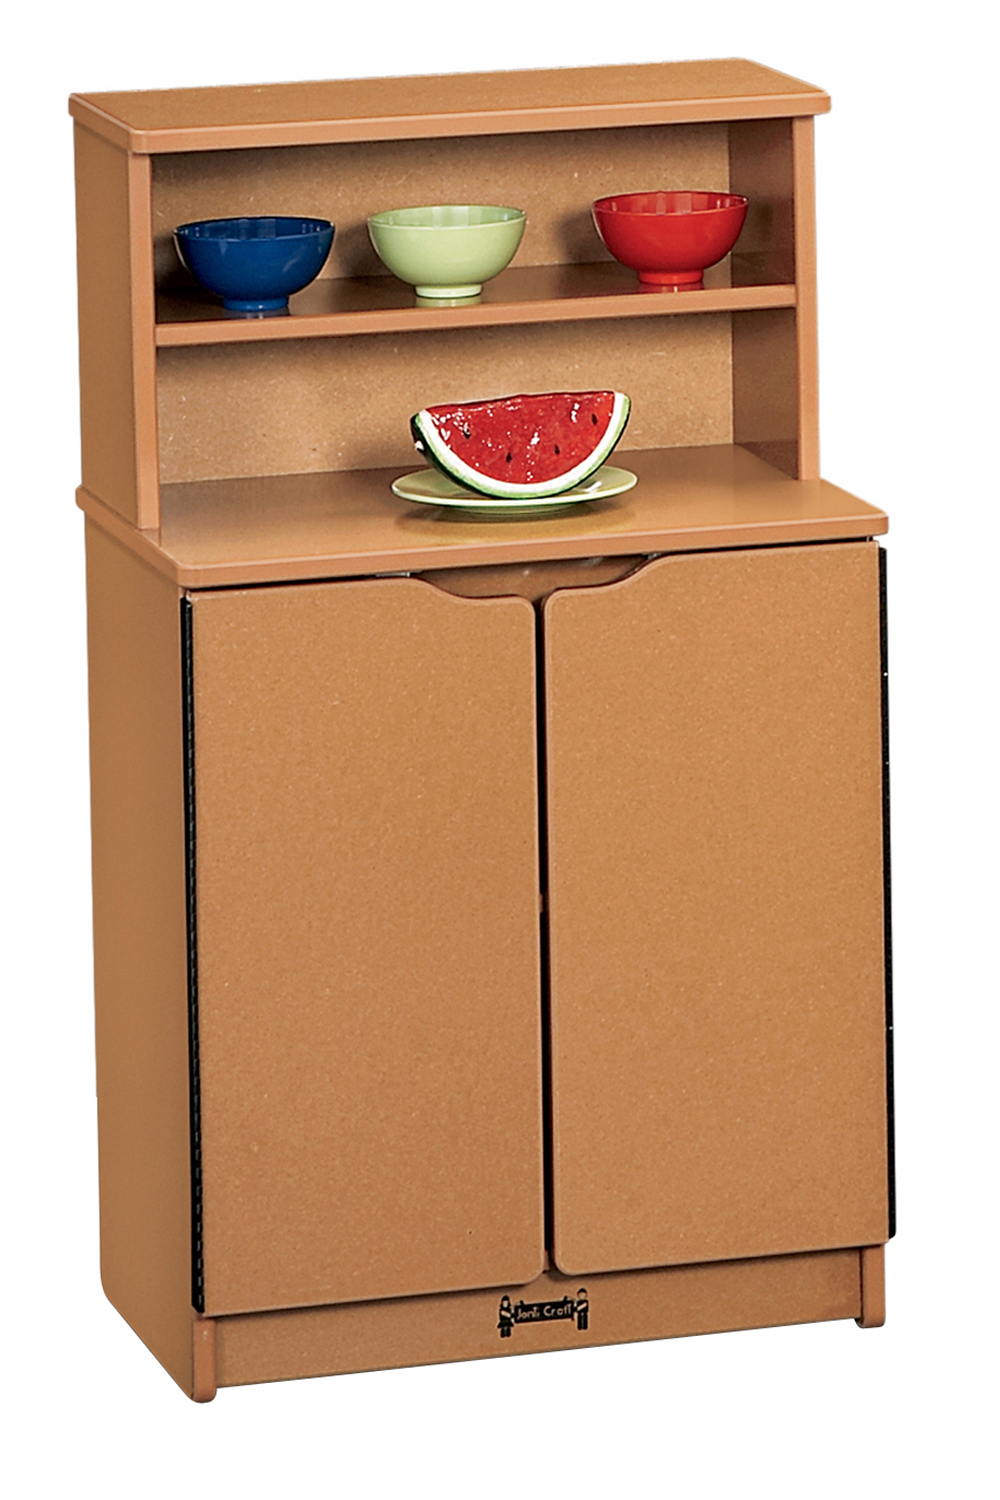 Jonti-Craft Sproutz Kids Play Room Wooden Kitchen Double Door Cabinet Cupboard With Storage Shelves Caramel at Sears.com